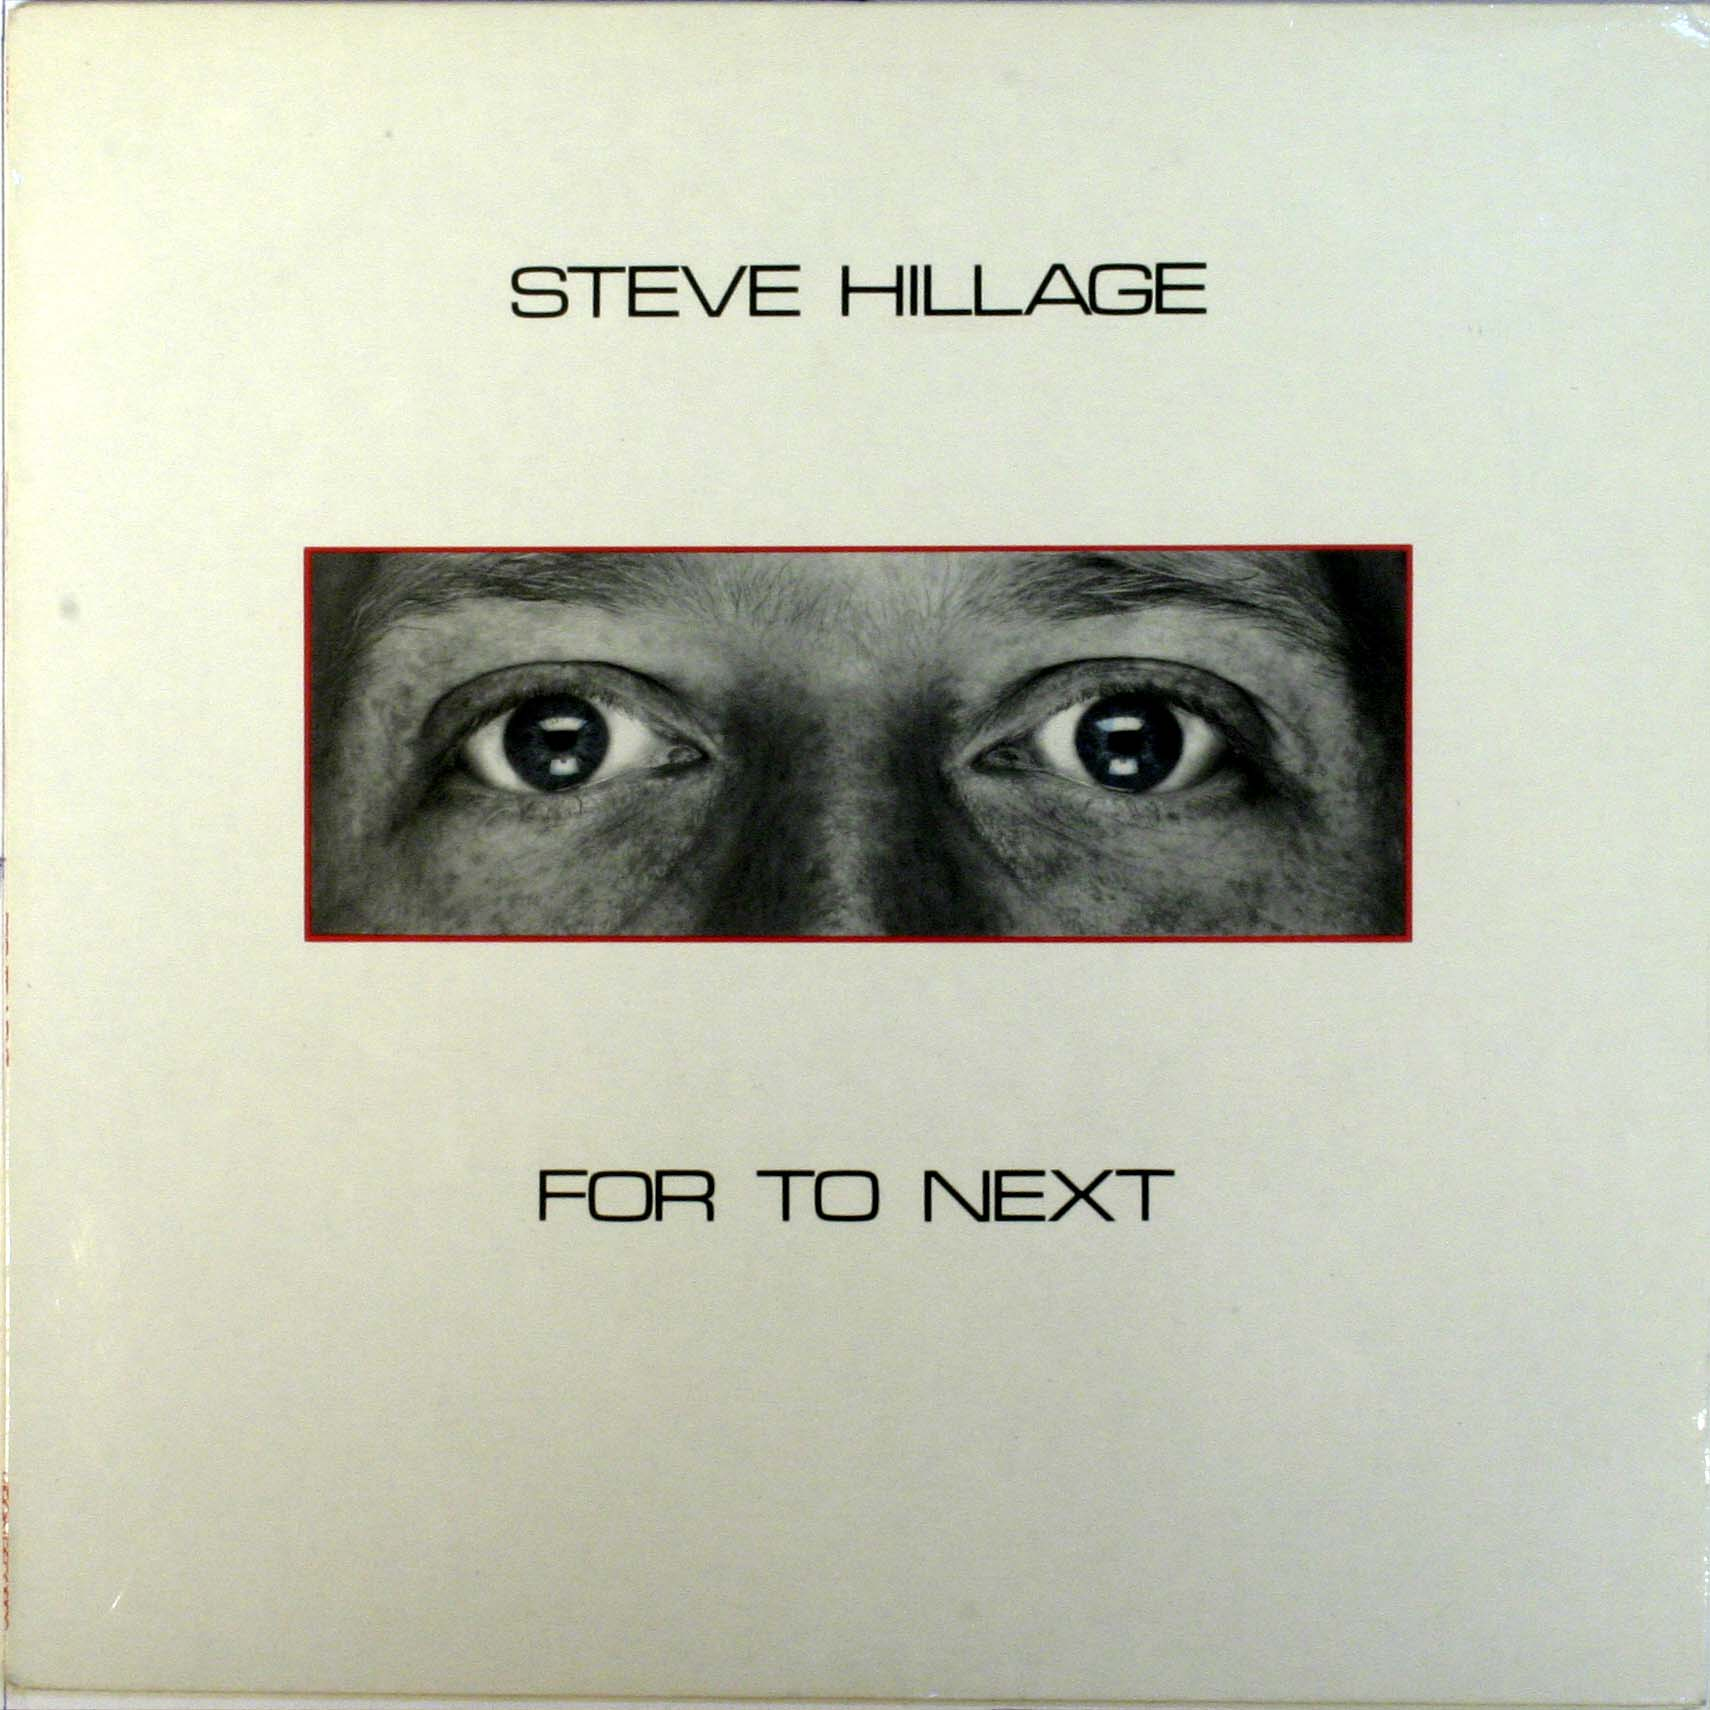 Steve Hillage - For To Next Album